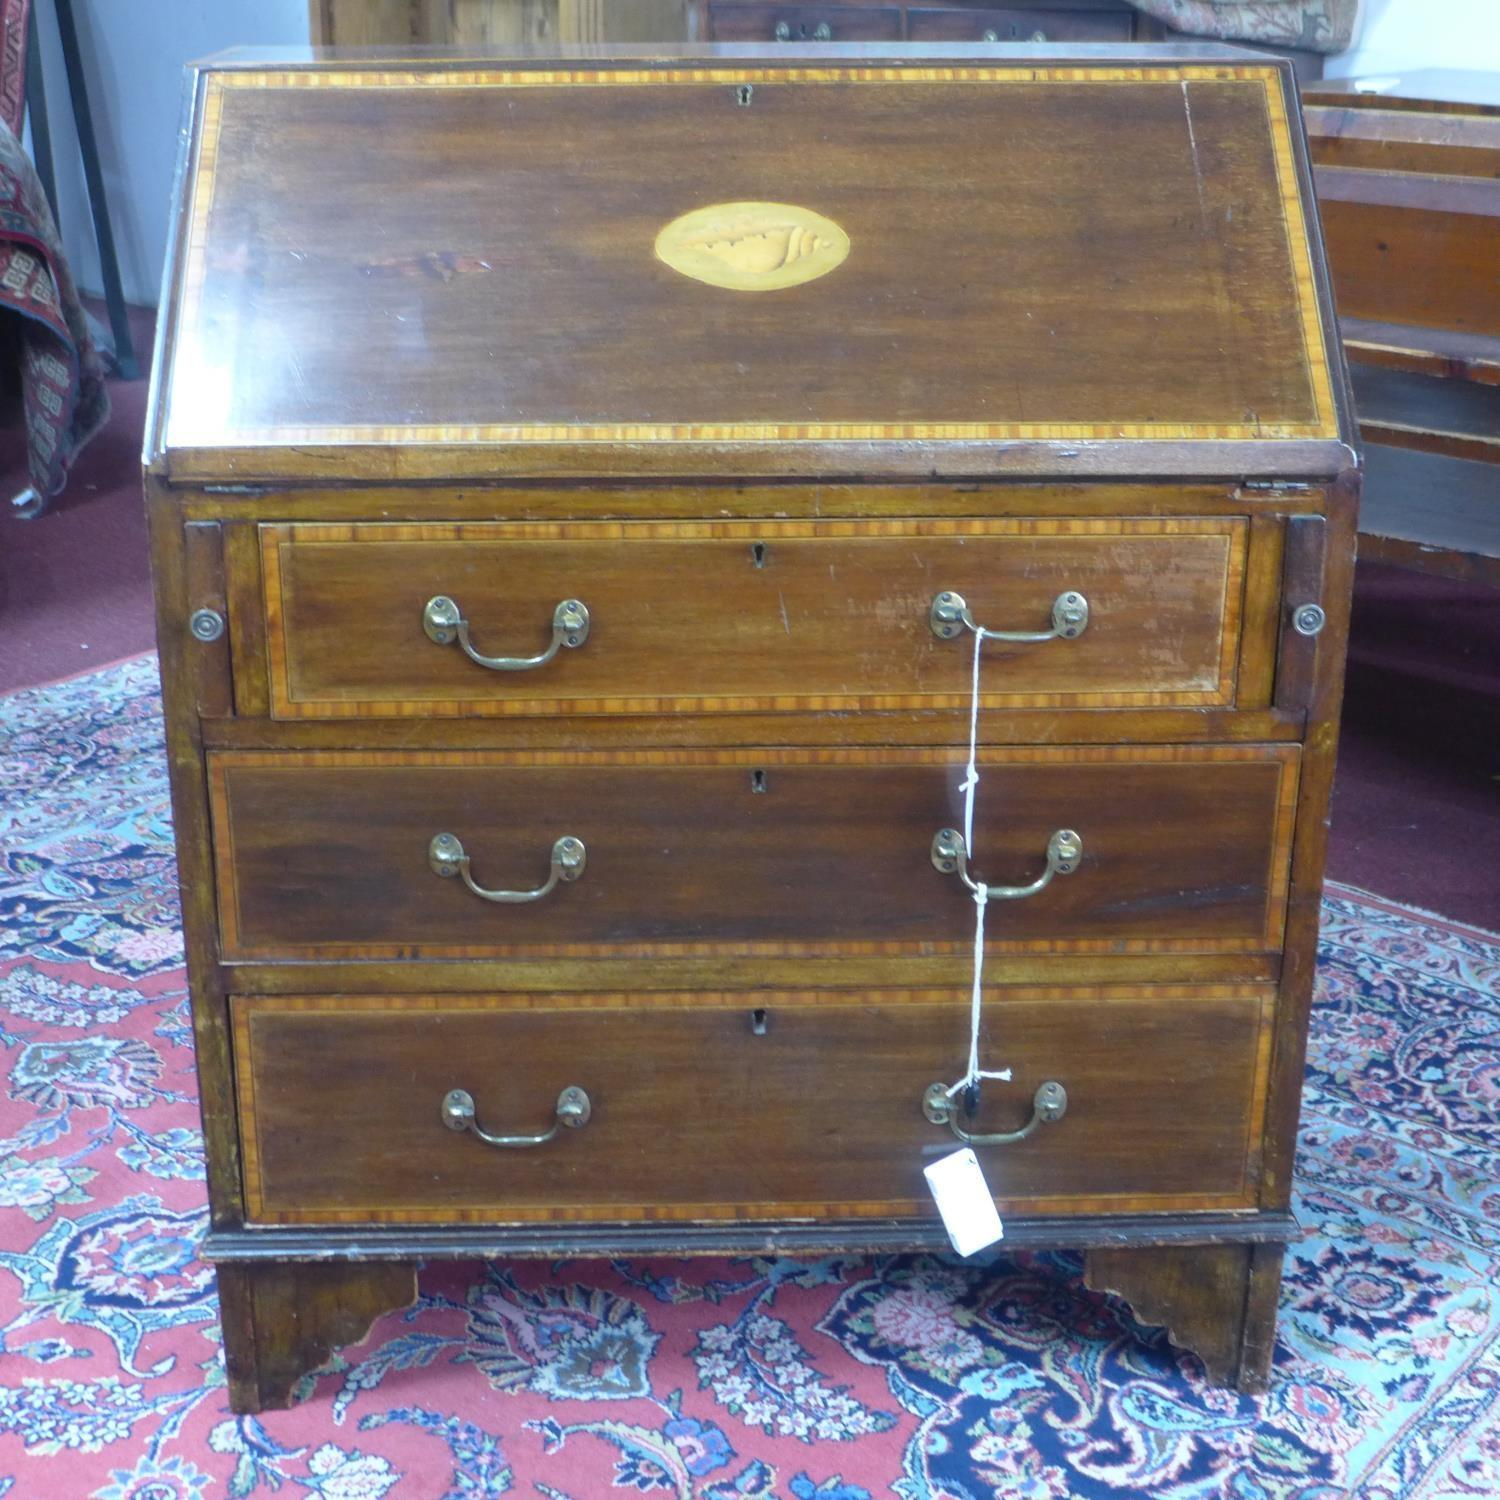 Lot 156 - An Edwardian Sheraton Revival inlaid mahogany bureau, with shell paterae to slope, having fitted